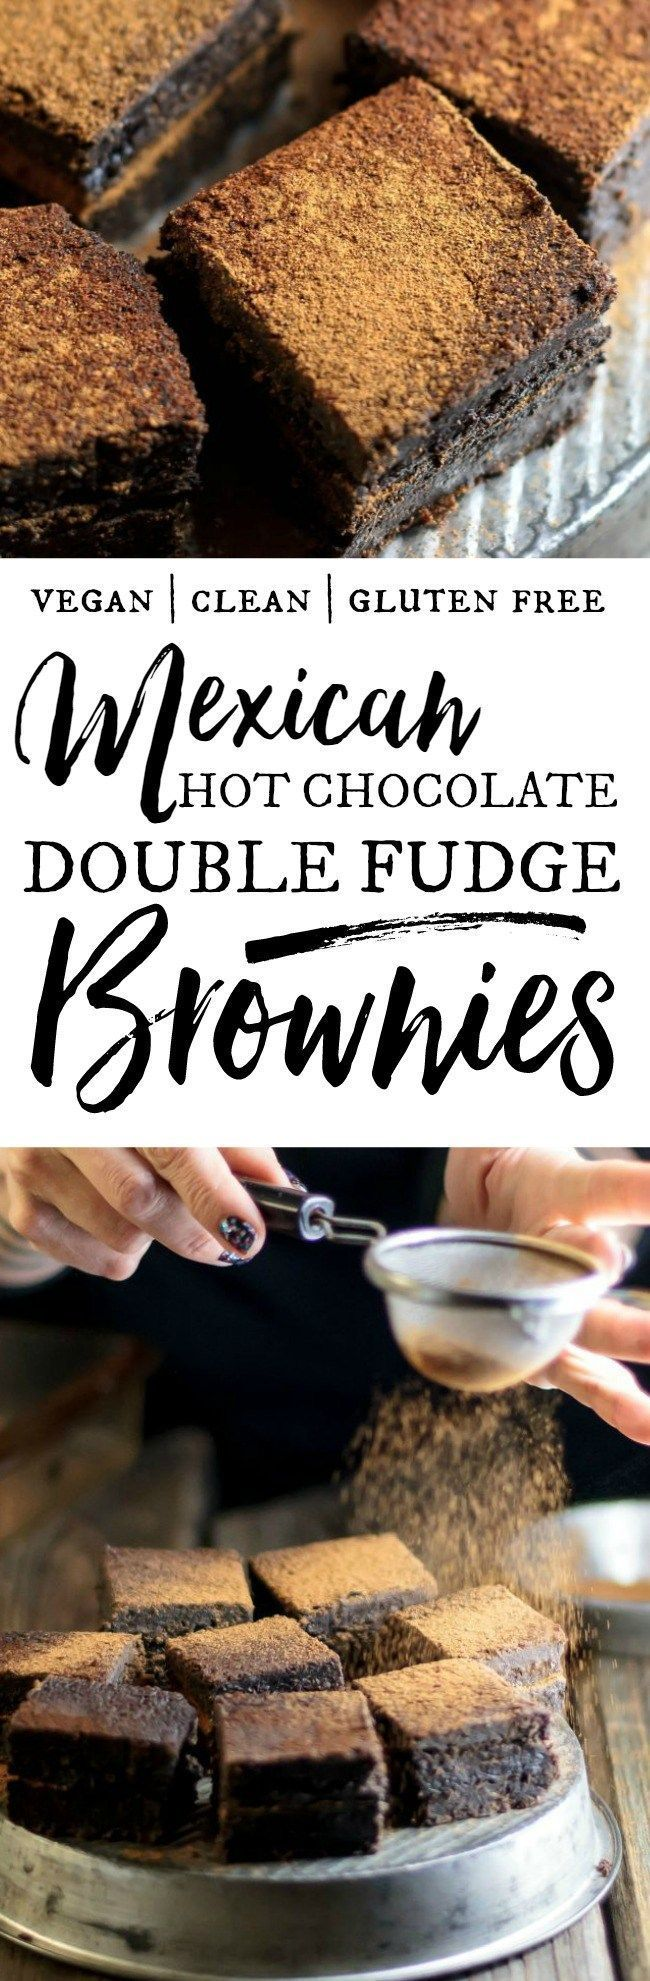 Mexican Hot Chocolate Double Fudge Brownies | vegan brownies | vegan baking | vegan chocolate recipes | clean eating | healthy vegan